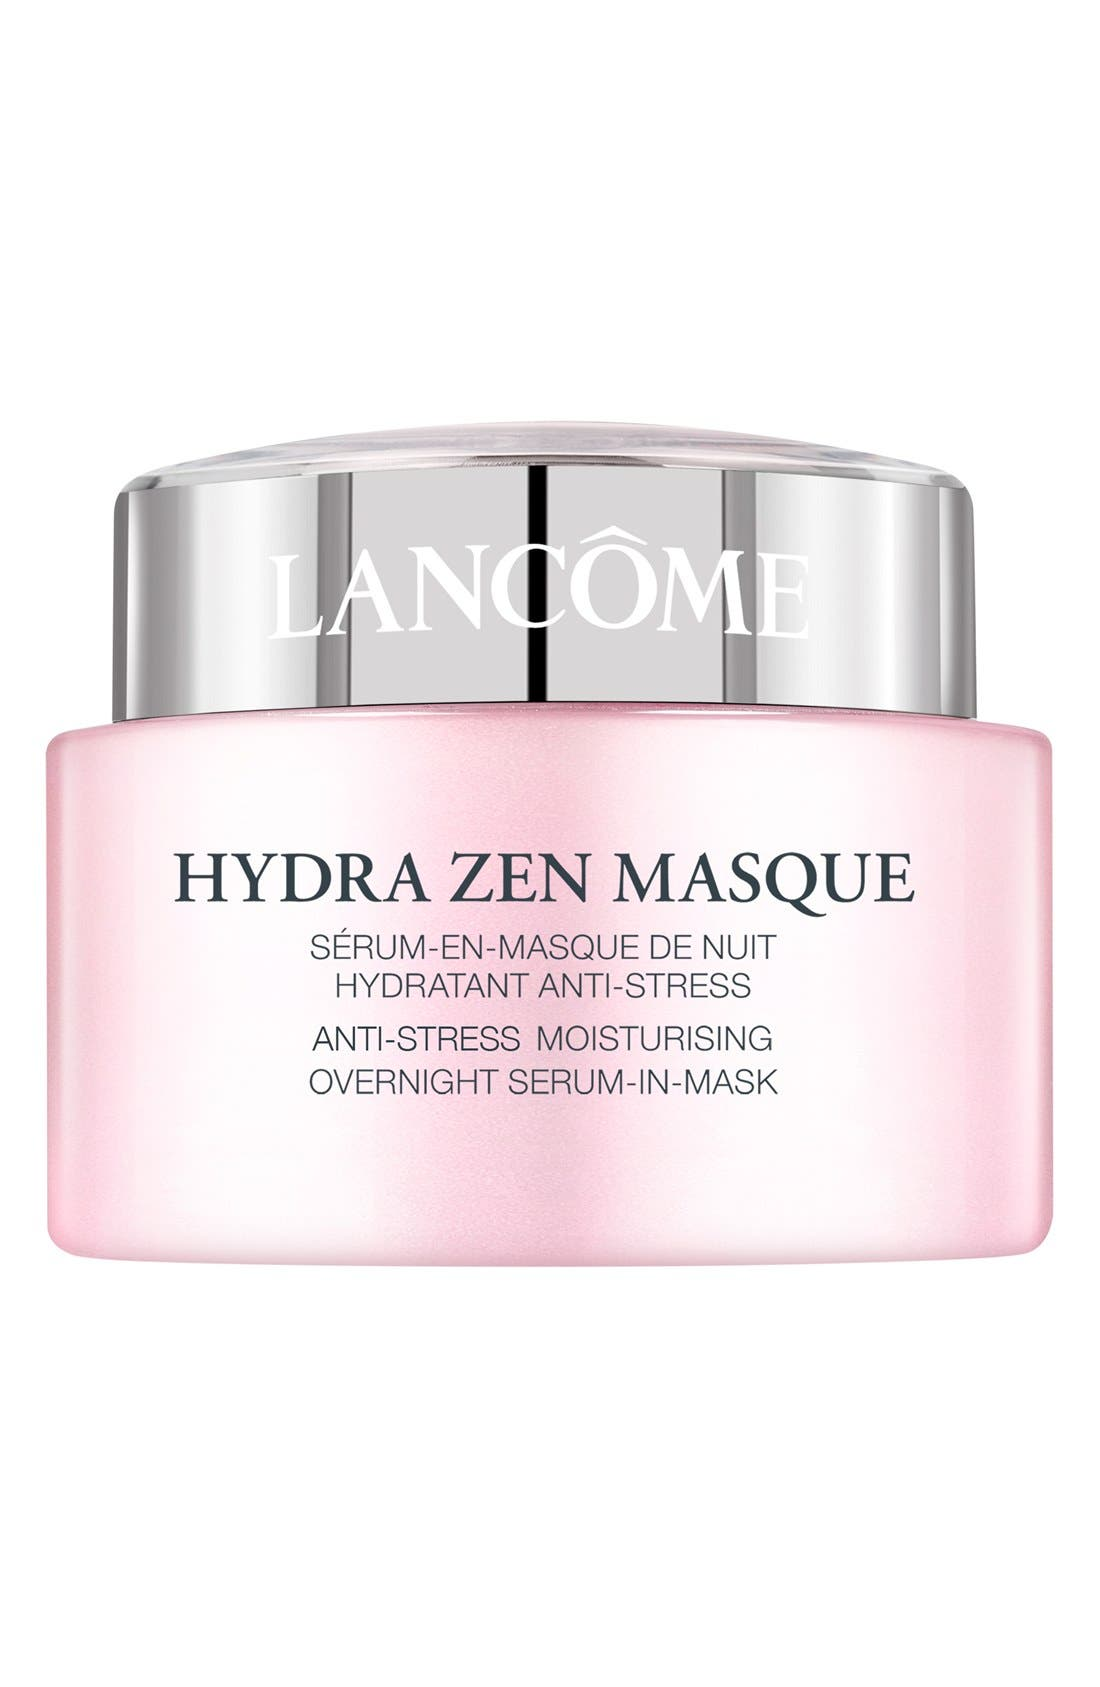 LANCÔME, Hydra Zen Anti-Stress Moisturizing Overnight Serum-in-Mask, Main thumbnail 1, color, NO COLOR